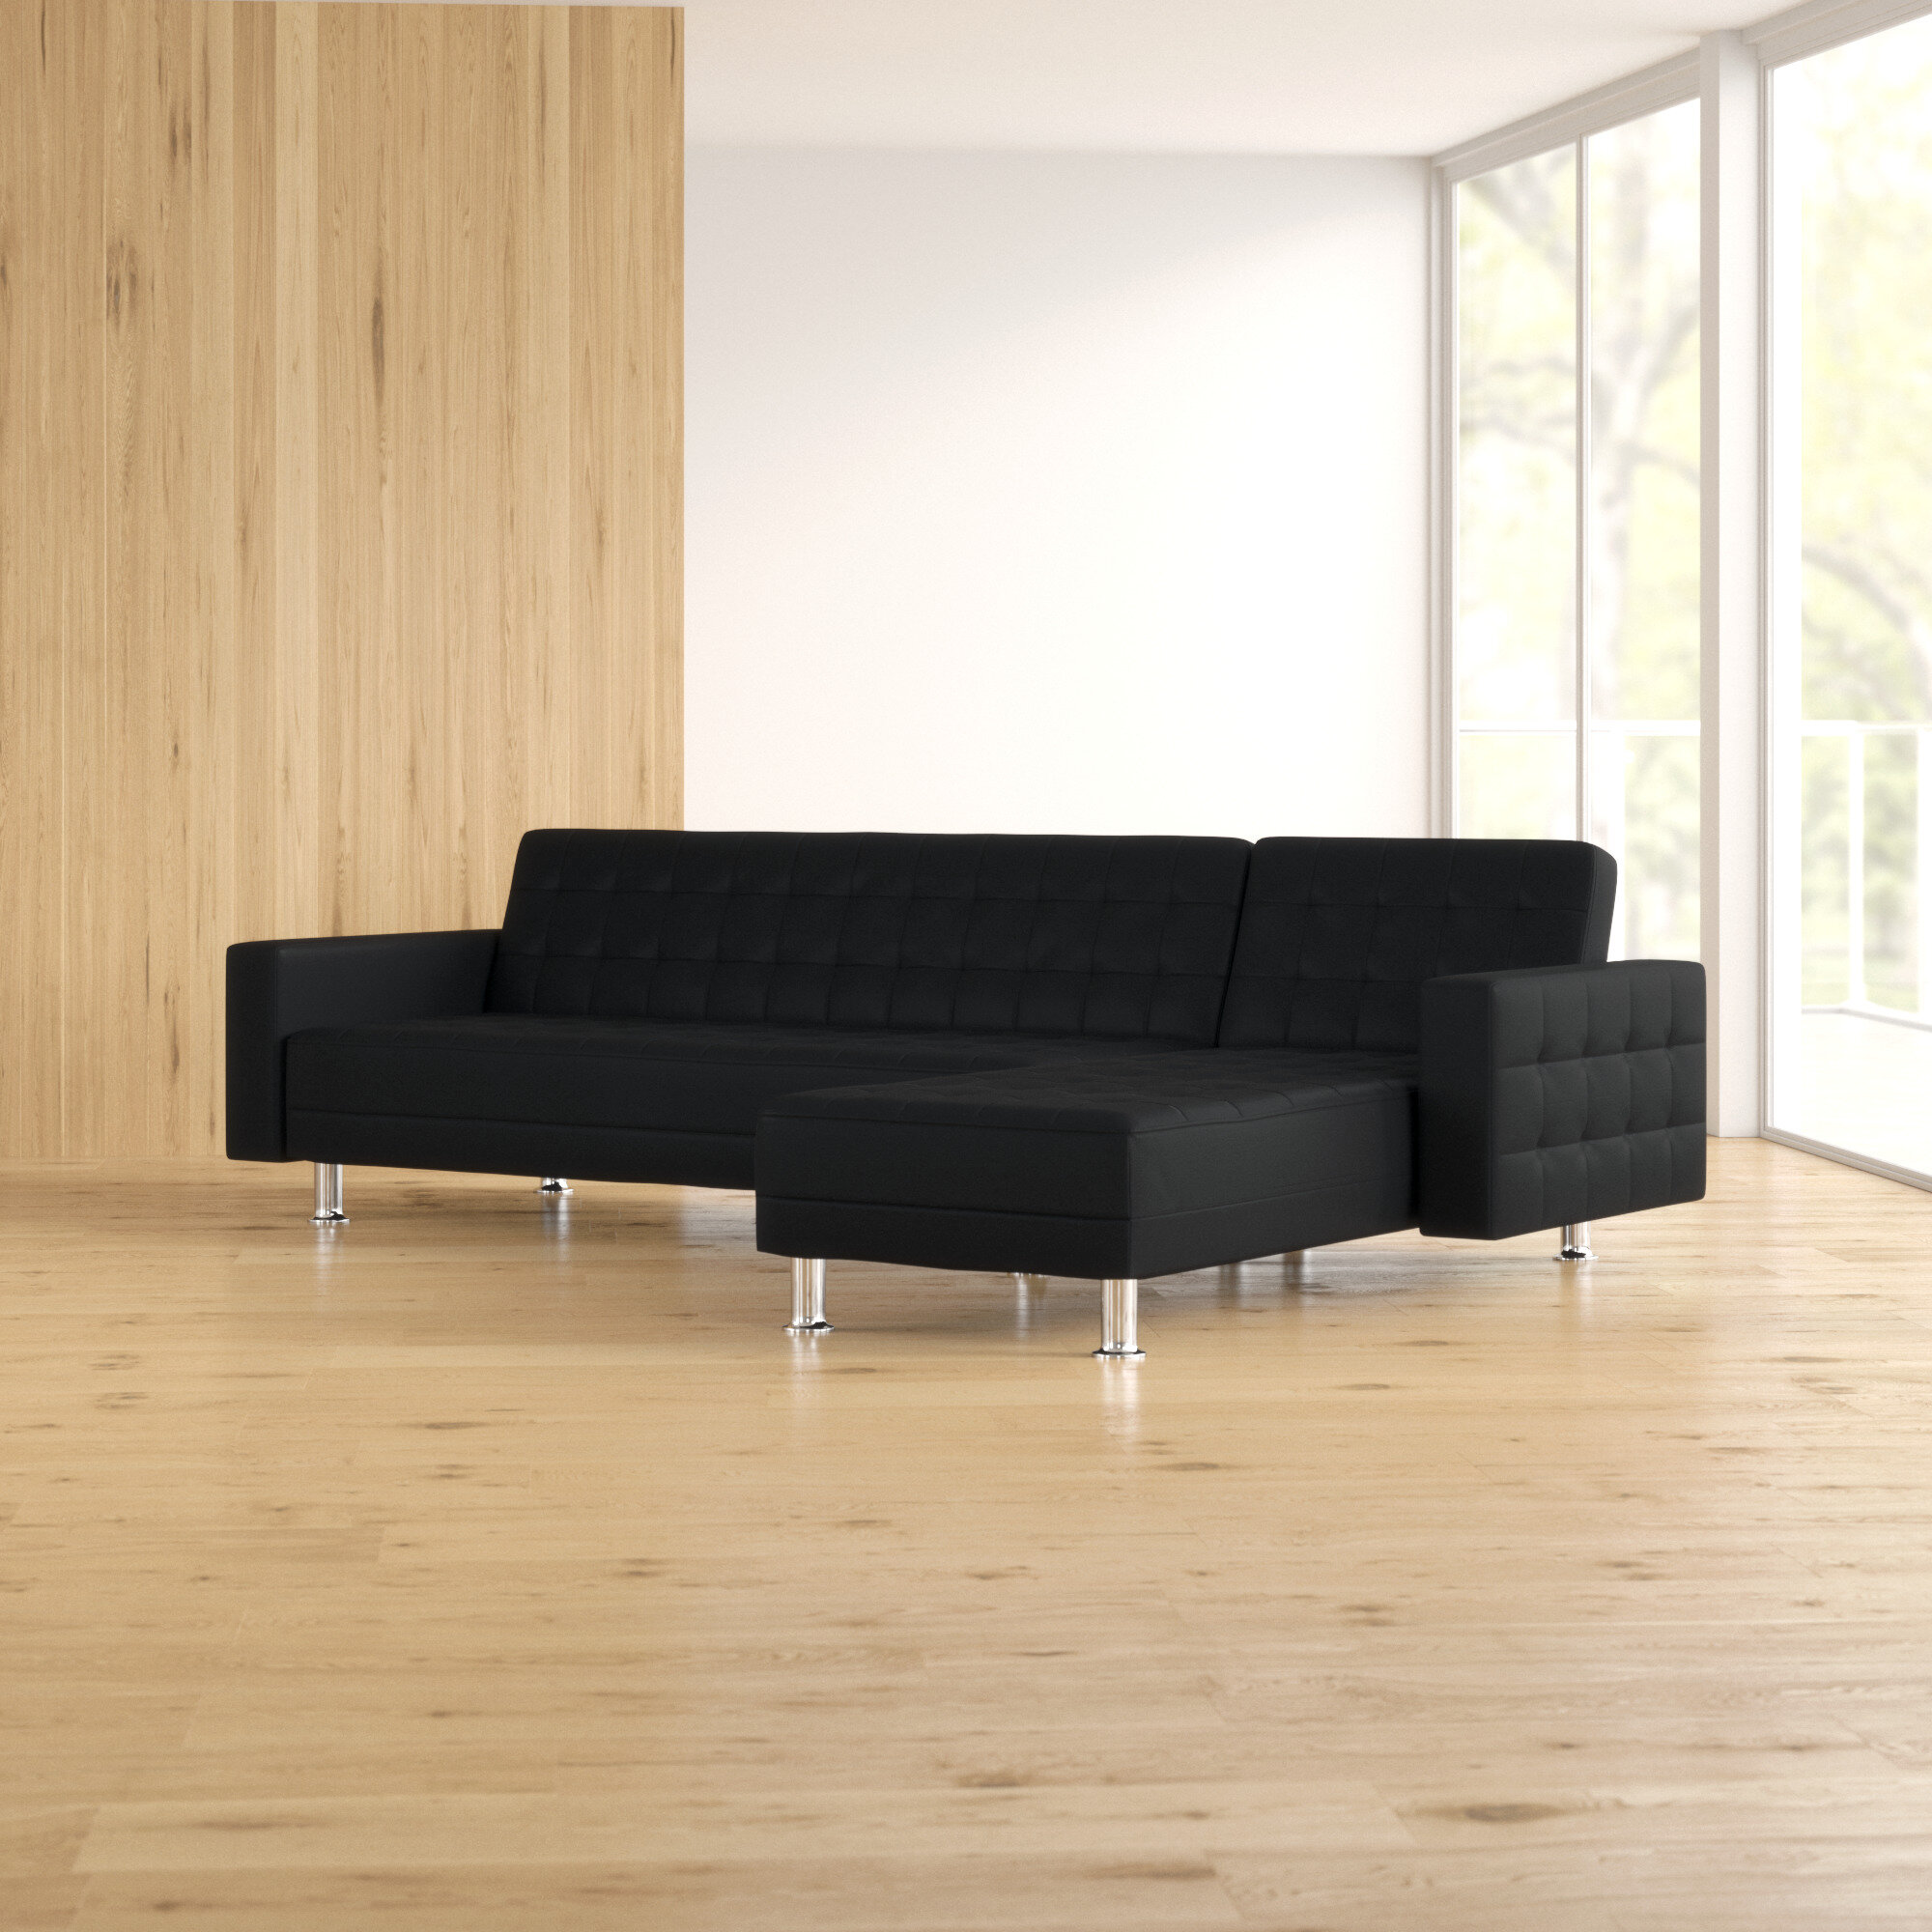 Superb Feather Down Sectional Sofa Wayfair Download Free Architecture Designs Scobabritishbridgeorg